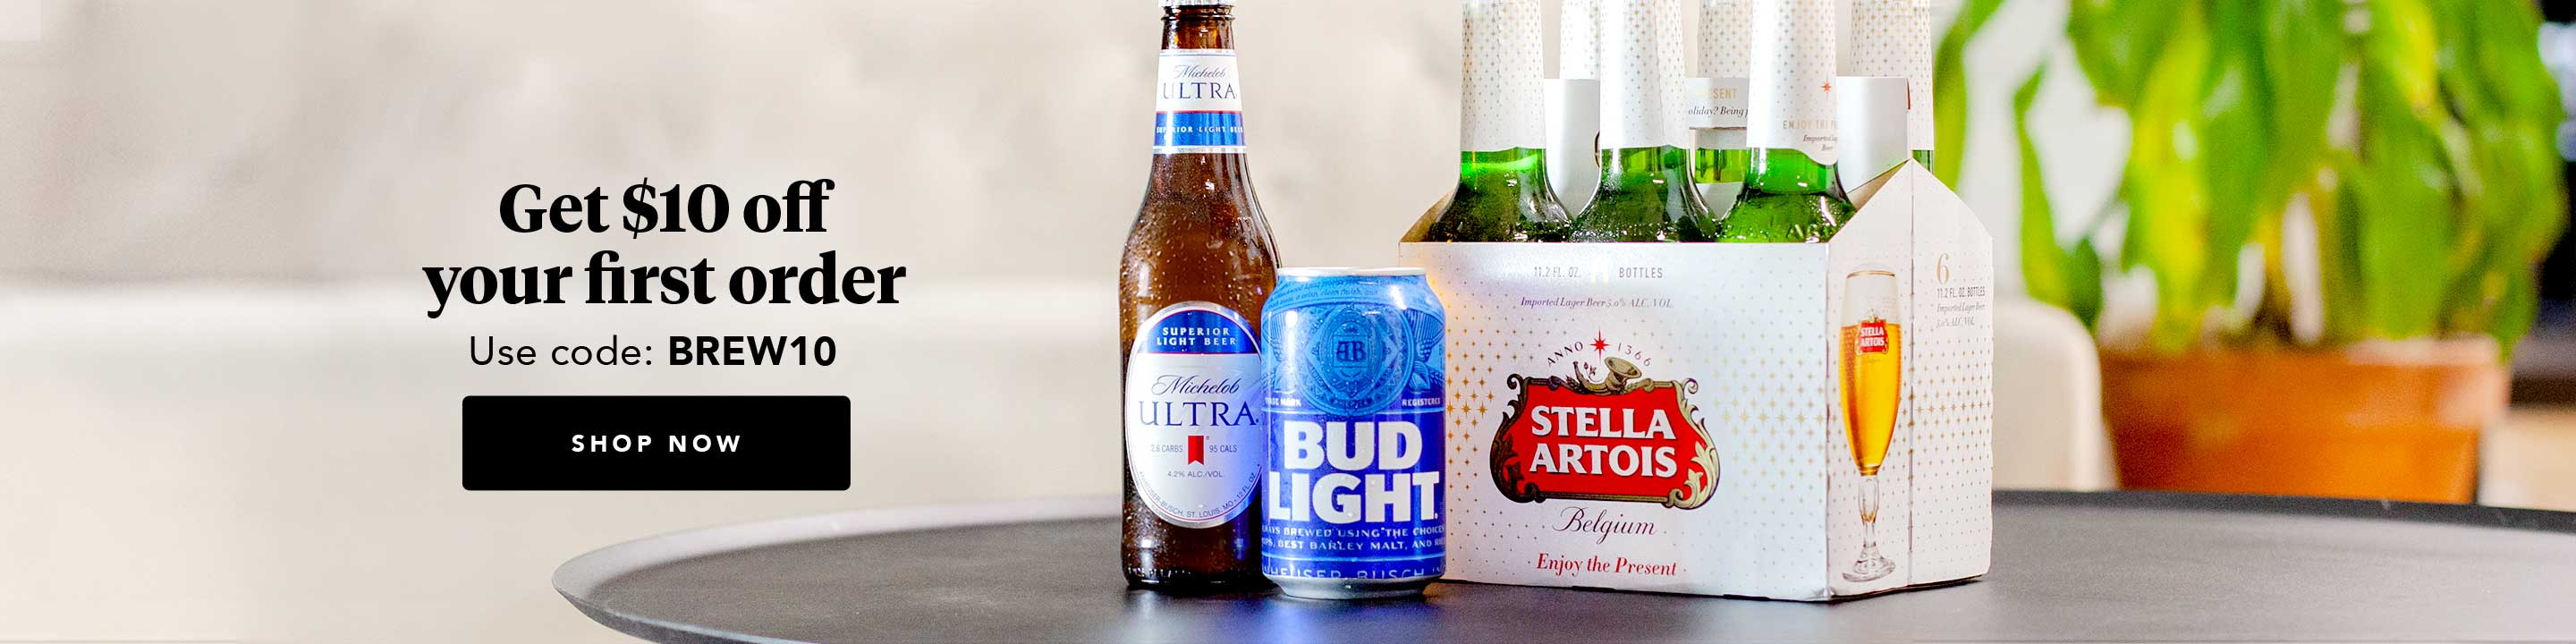 Get Anheuser-Busch products delivered right to your door via Minibar Delivery.